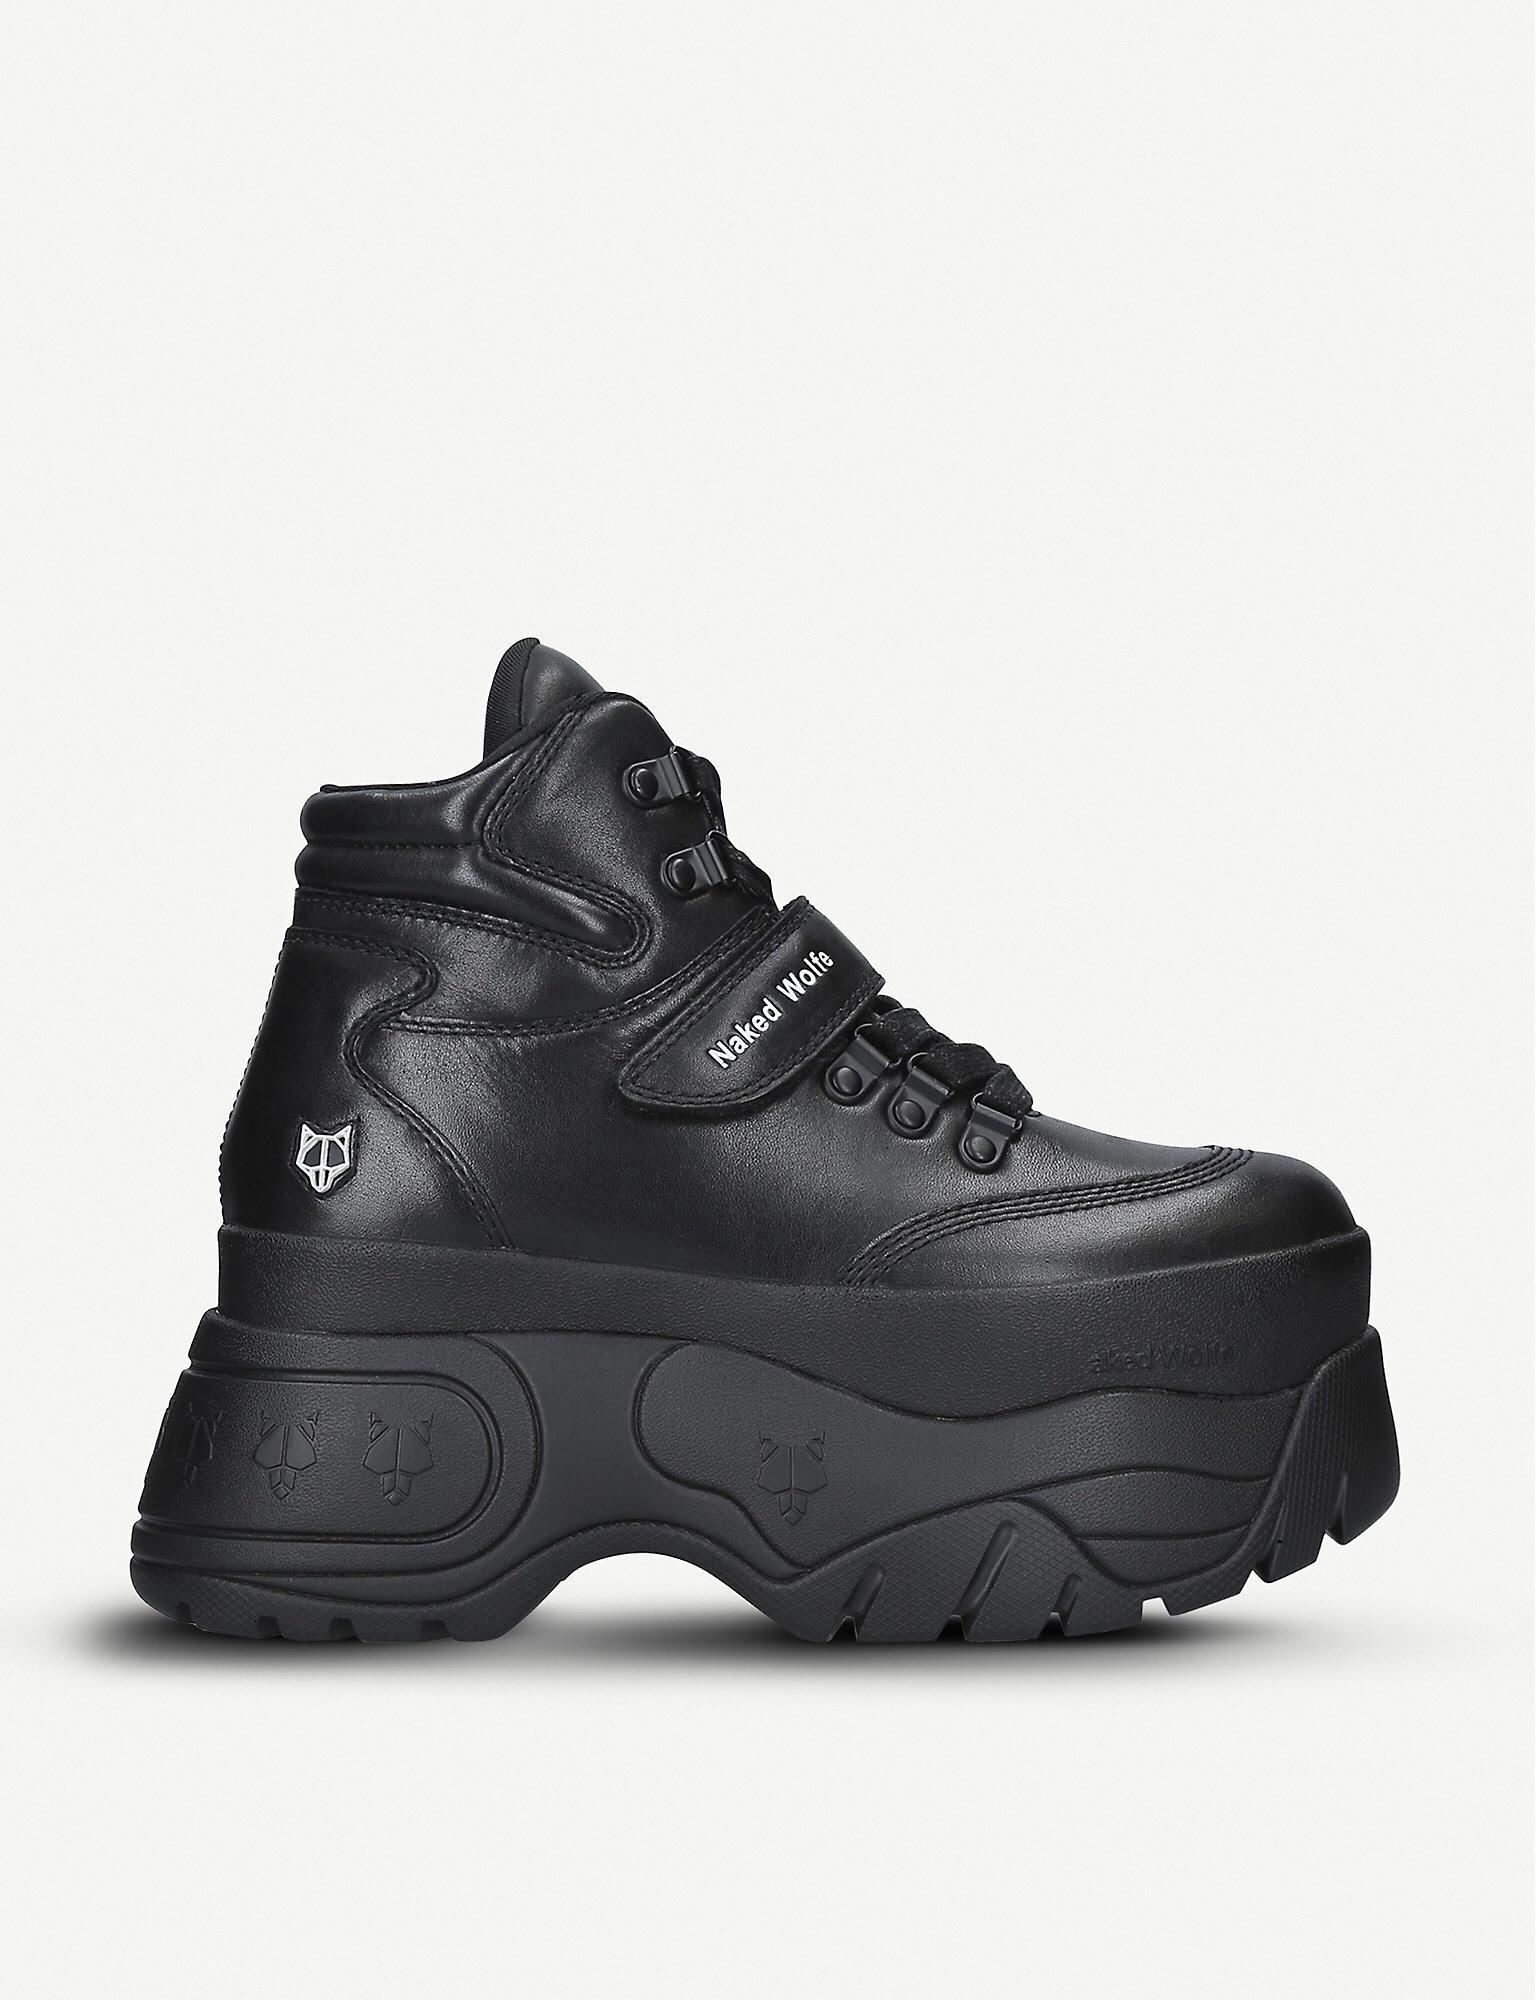 naked wolfe black trainers